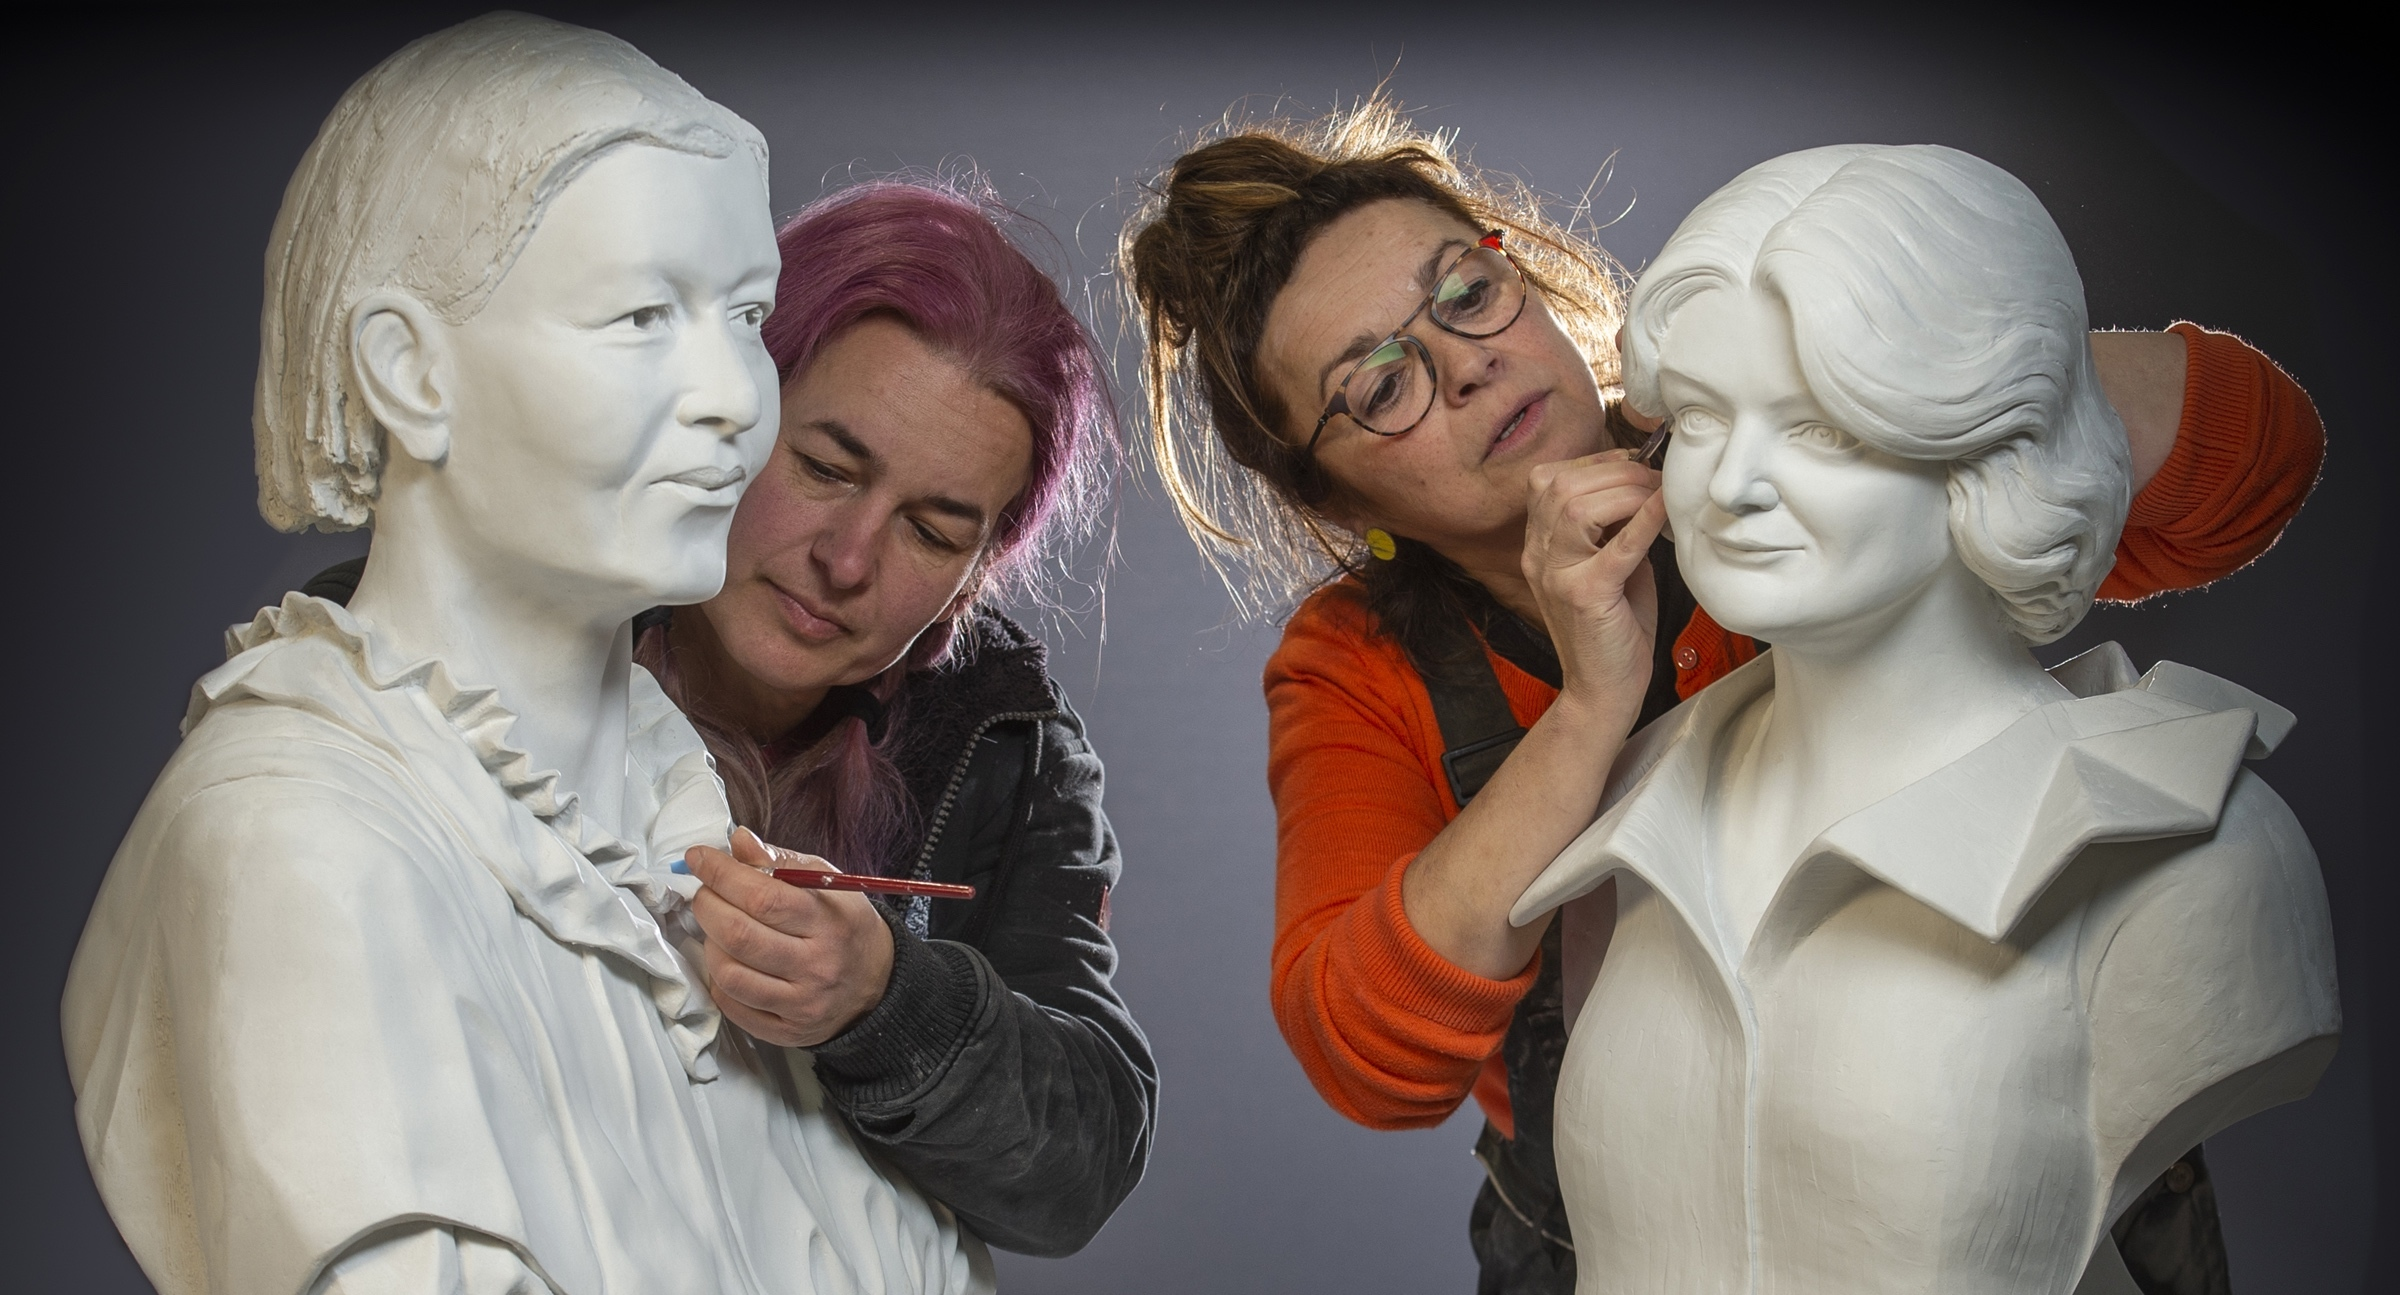 Sculptors Csilla Karsay and Graciela Ainsworth add the finishing touches to the busts of Mary Slessor and Maggie Keswick Jencks.